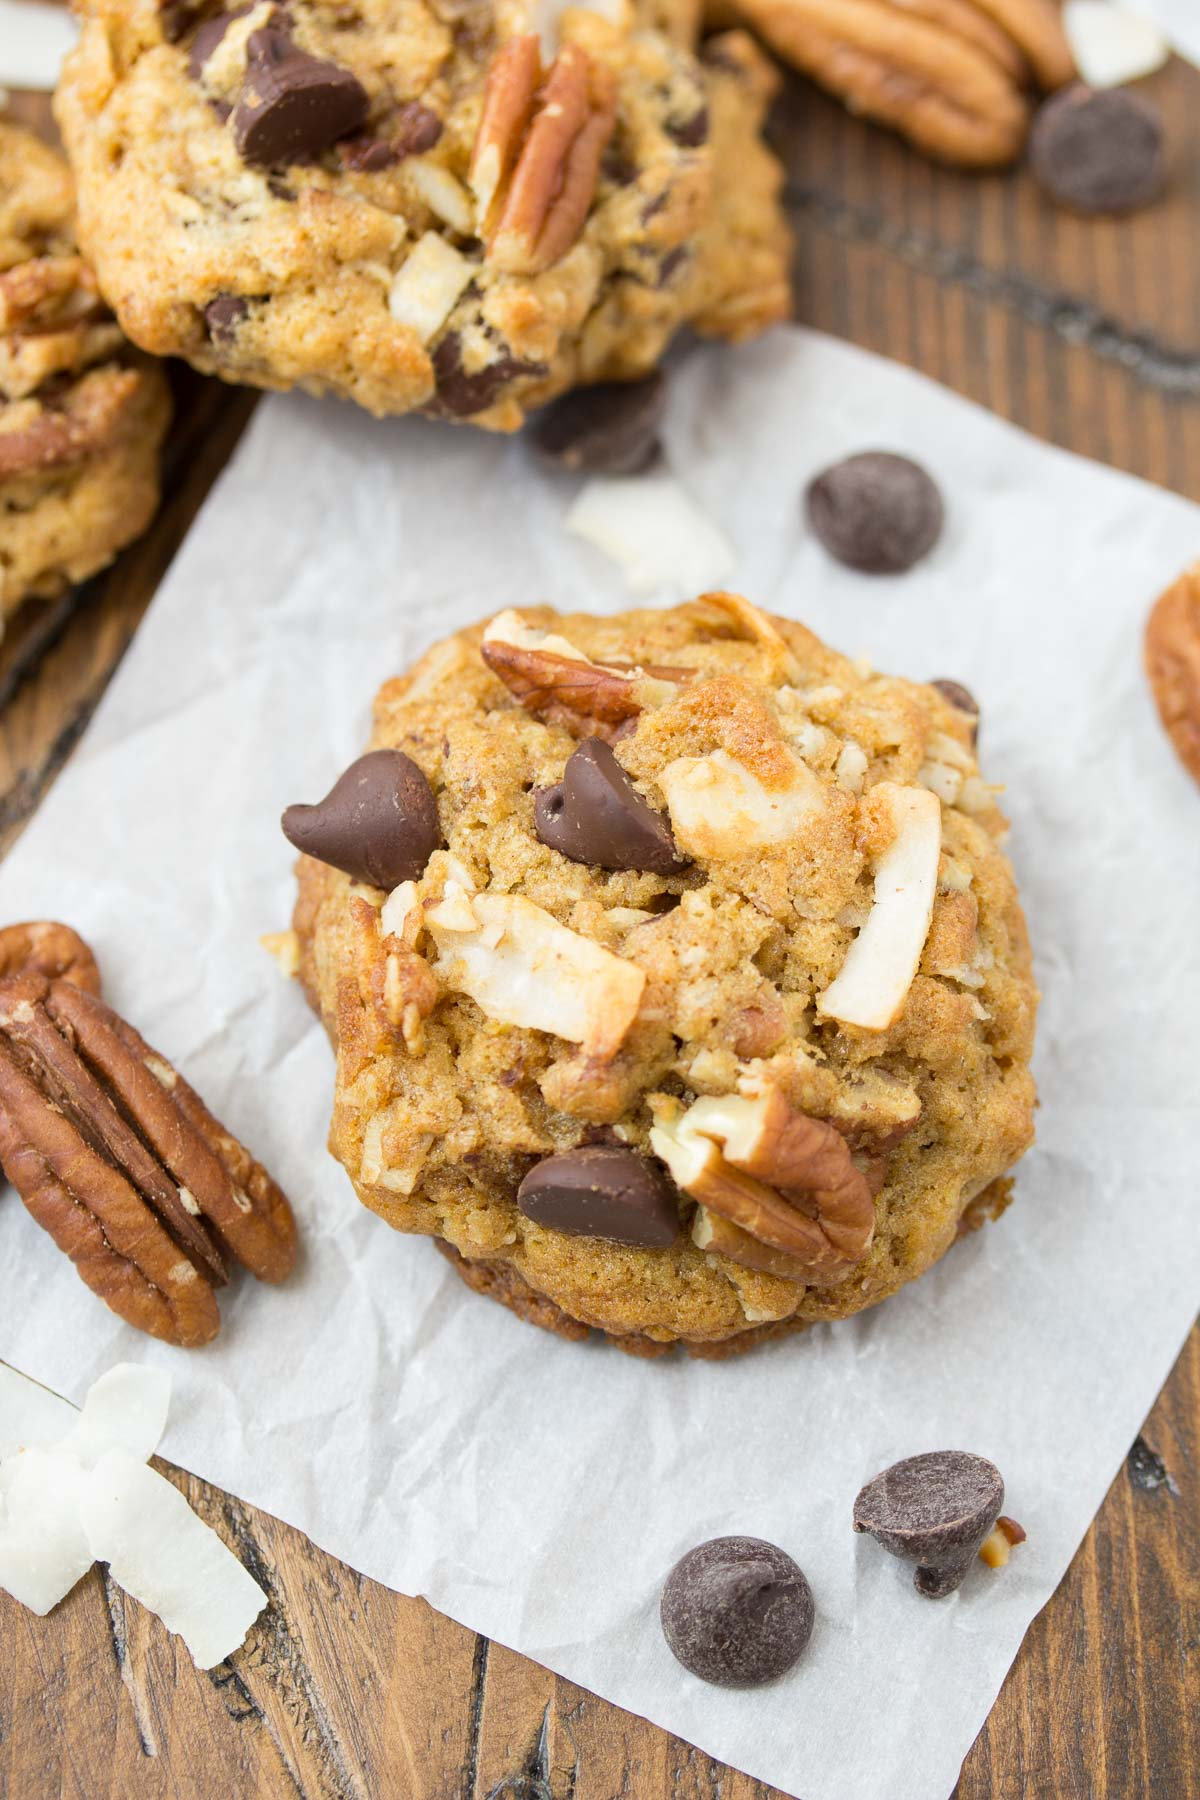 Soft and delicious Loaded Whole Wheat Chocolate Chip Cookies, made with wheat germ and 100% whole wheat flour! With toasted coconut, pecans, and oatmeal this healthier cookie recipe is the best!